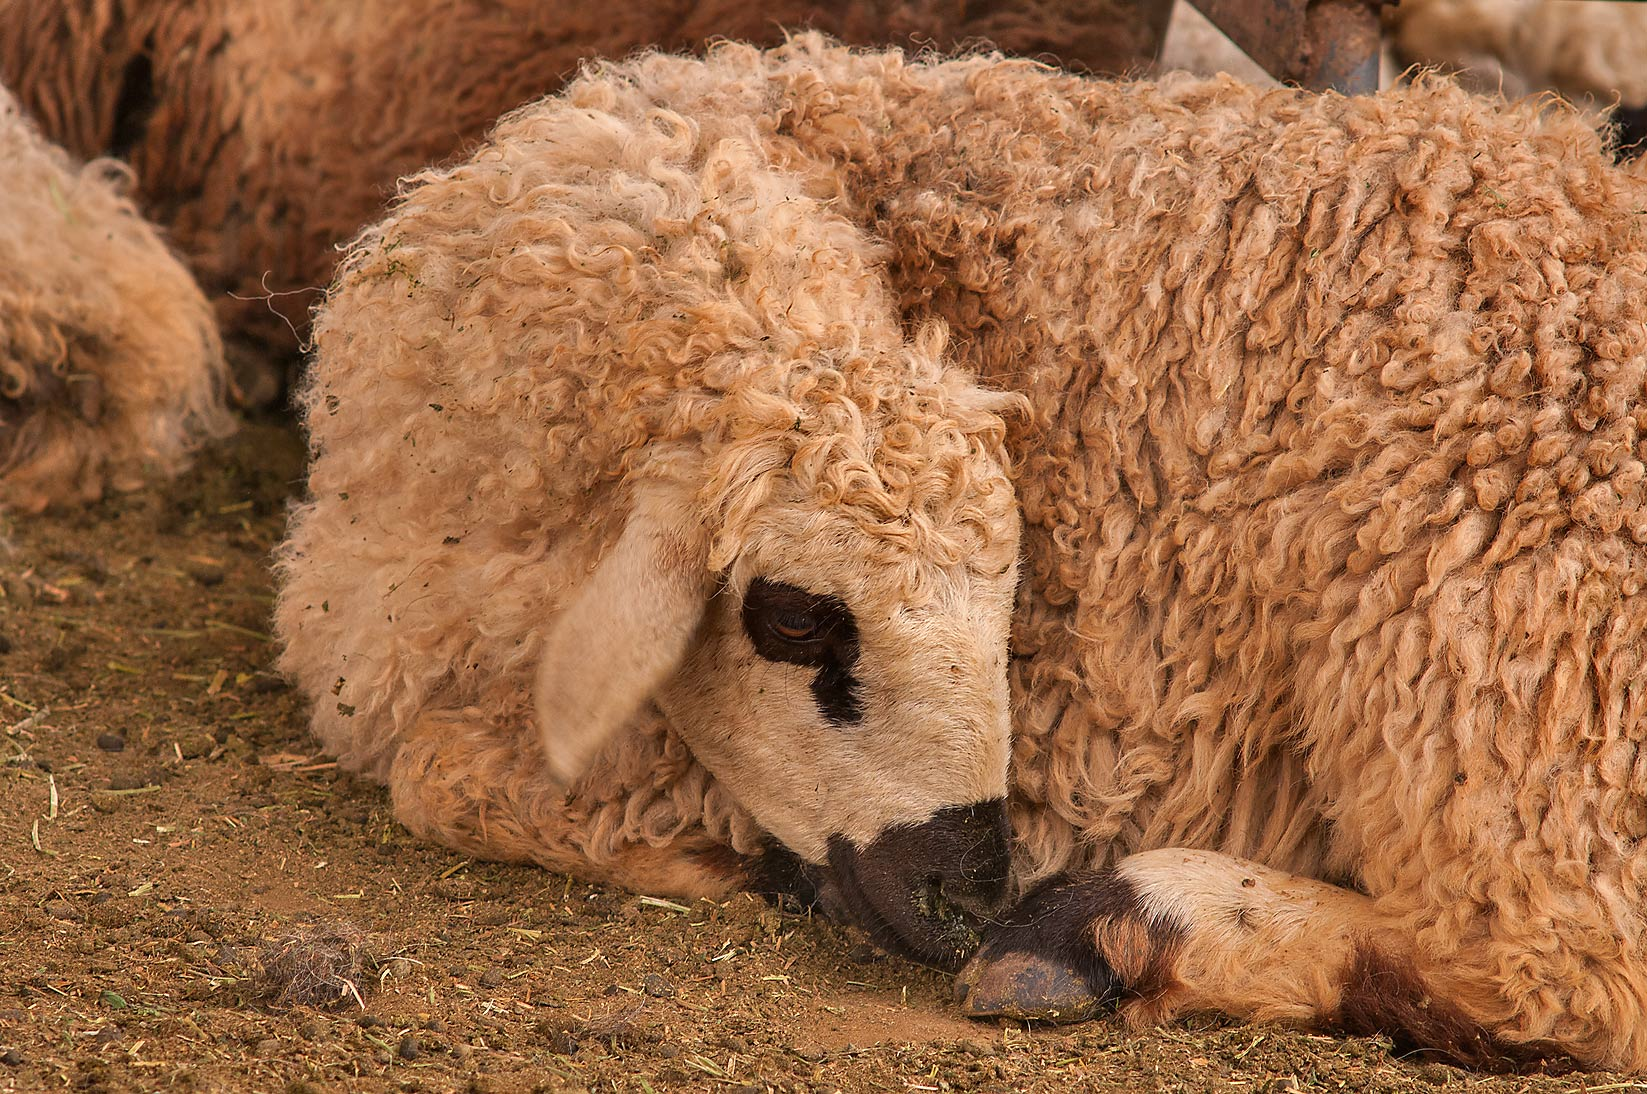 Point coloration of a sleeping sheep in livestock market, Abu Hamour area. Doha, Qatar